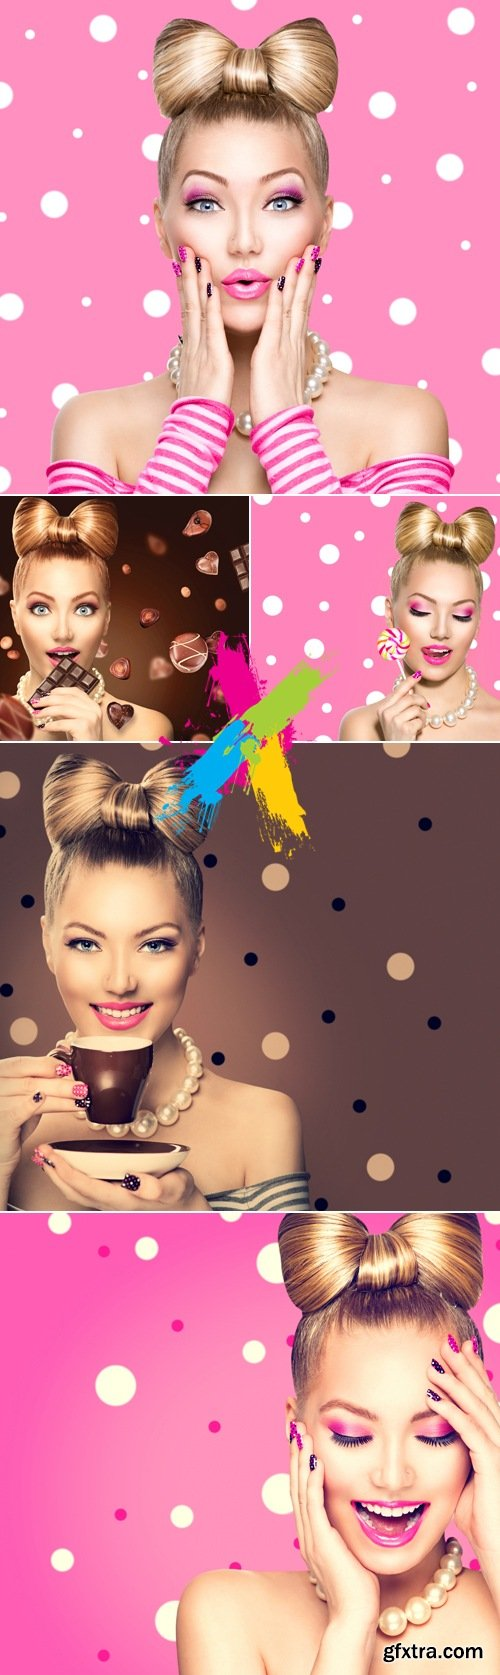 Stock Photo - Blonde Woman with Candies